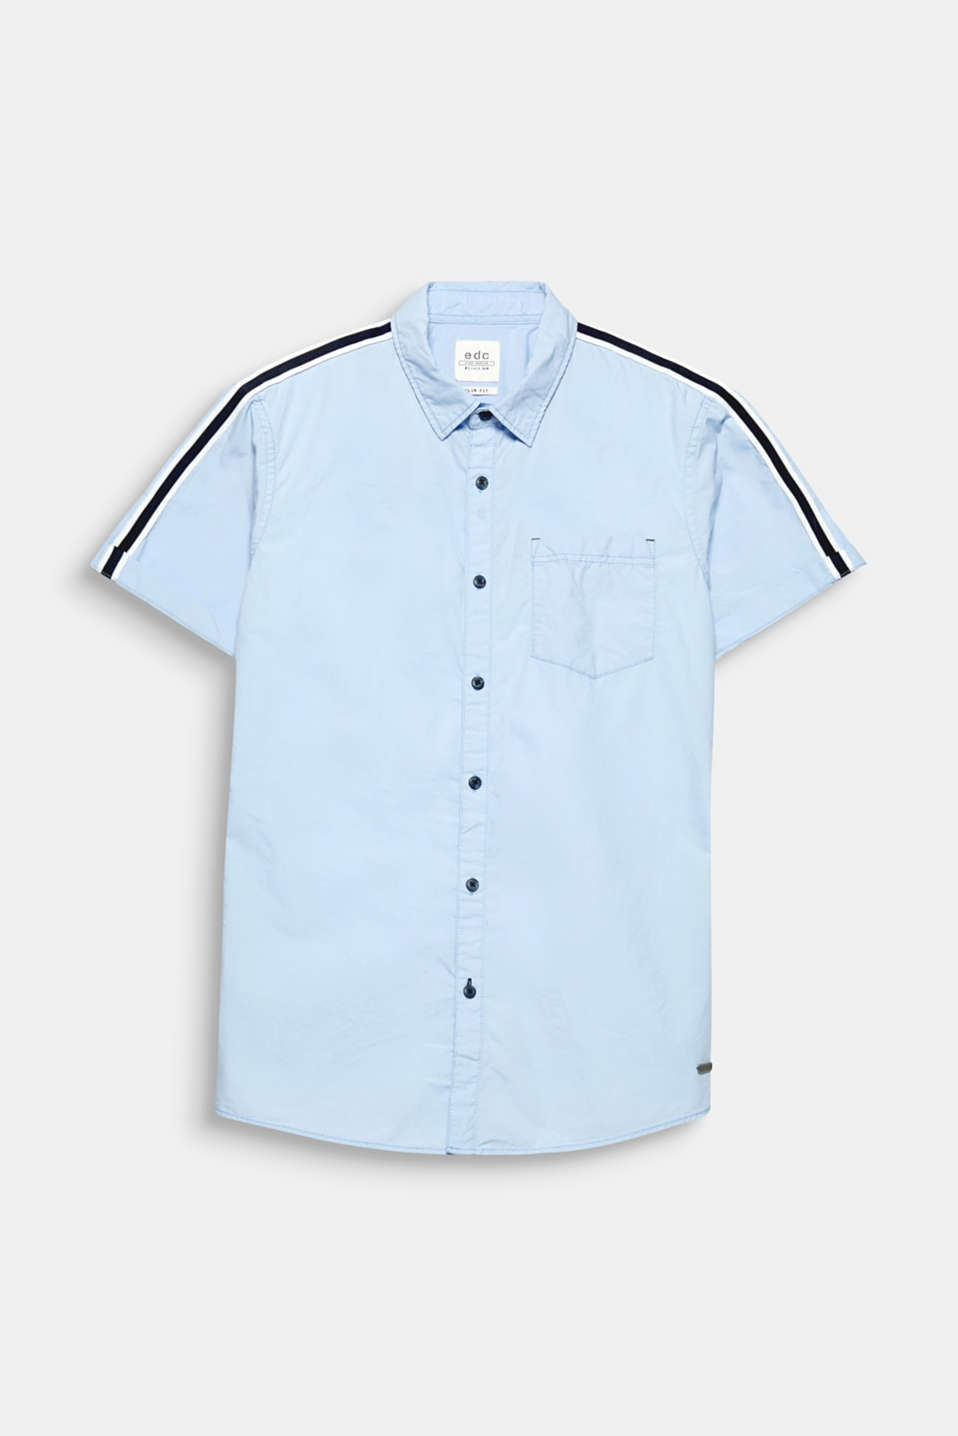 This short sleeve shirt has a distinctive sporty look thanks to the woven tape on the shoulders.